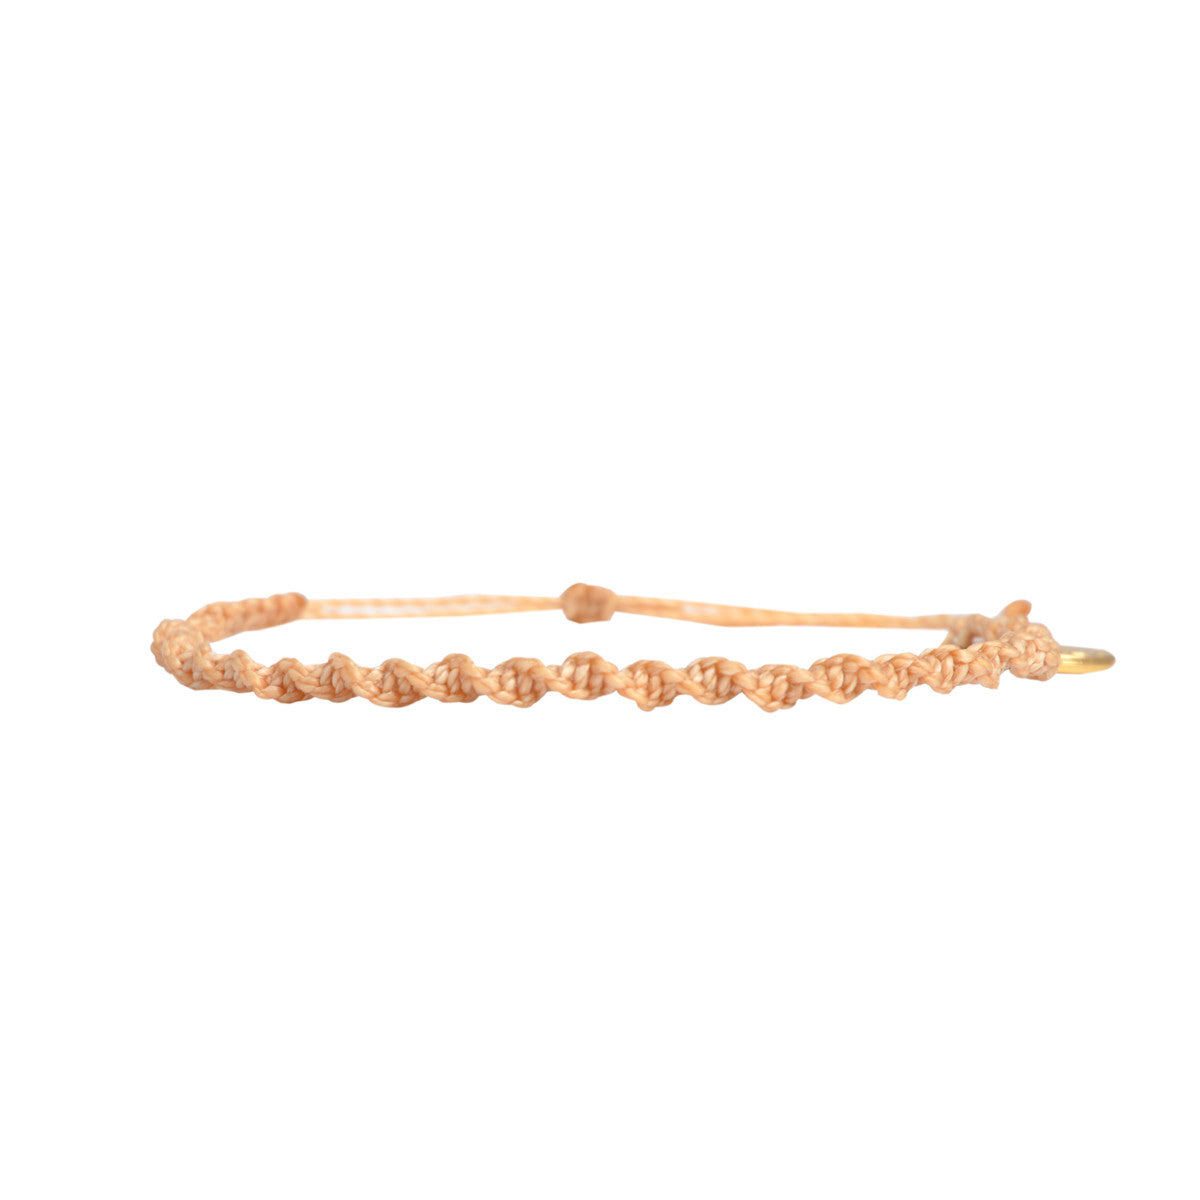 Macrame Twist Bracelet Light Sand